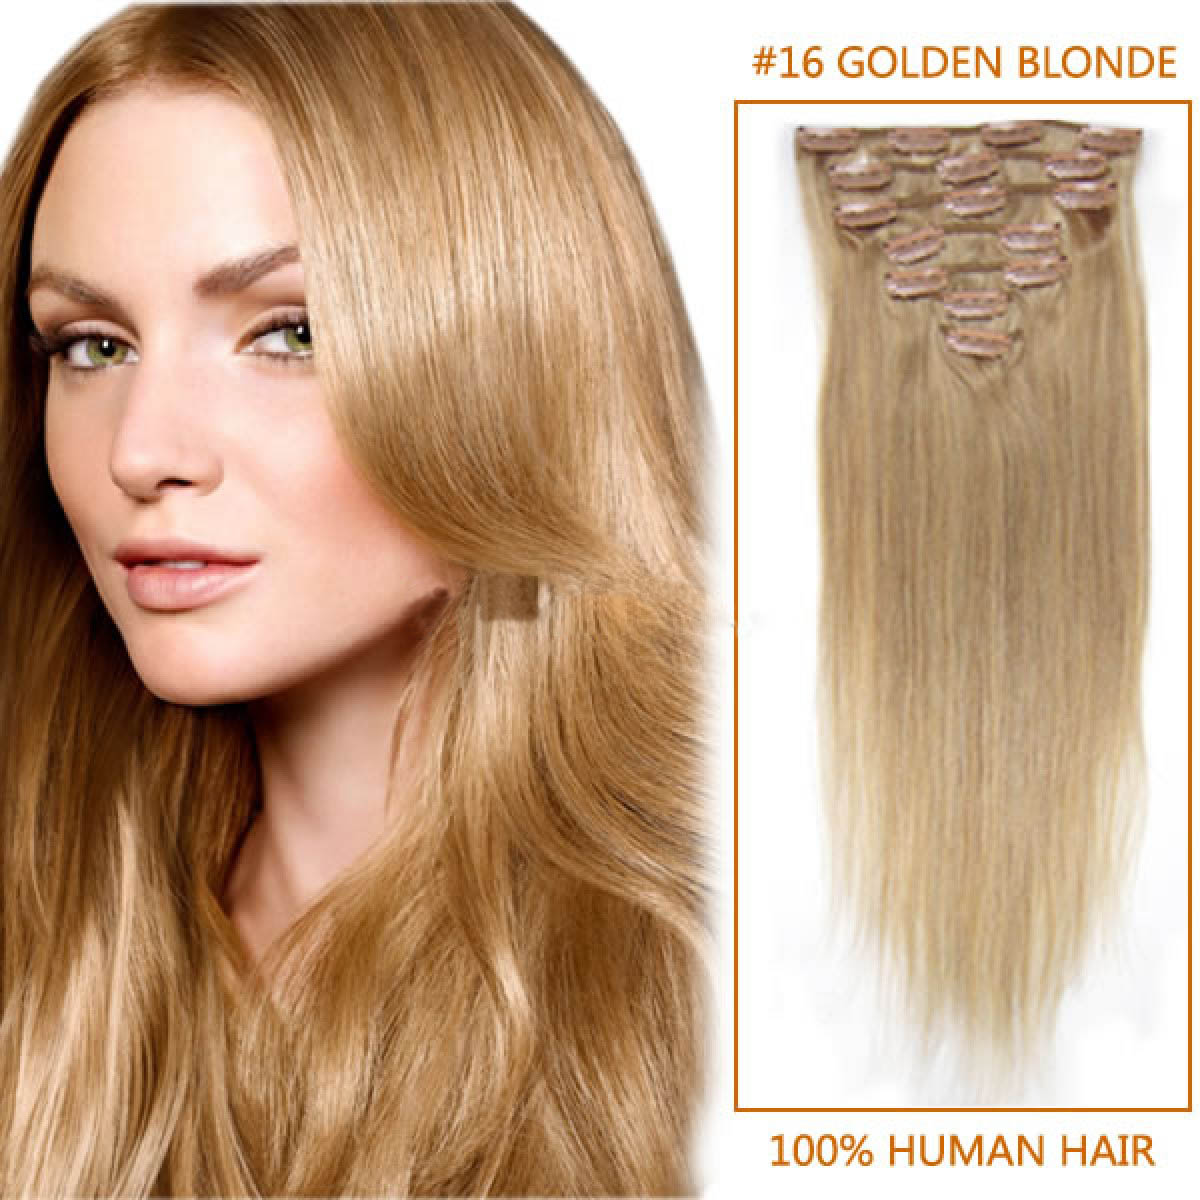 22 Inch 16 Golden Blonde Clip In Human Hair Extensions 10pcs